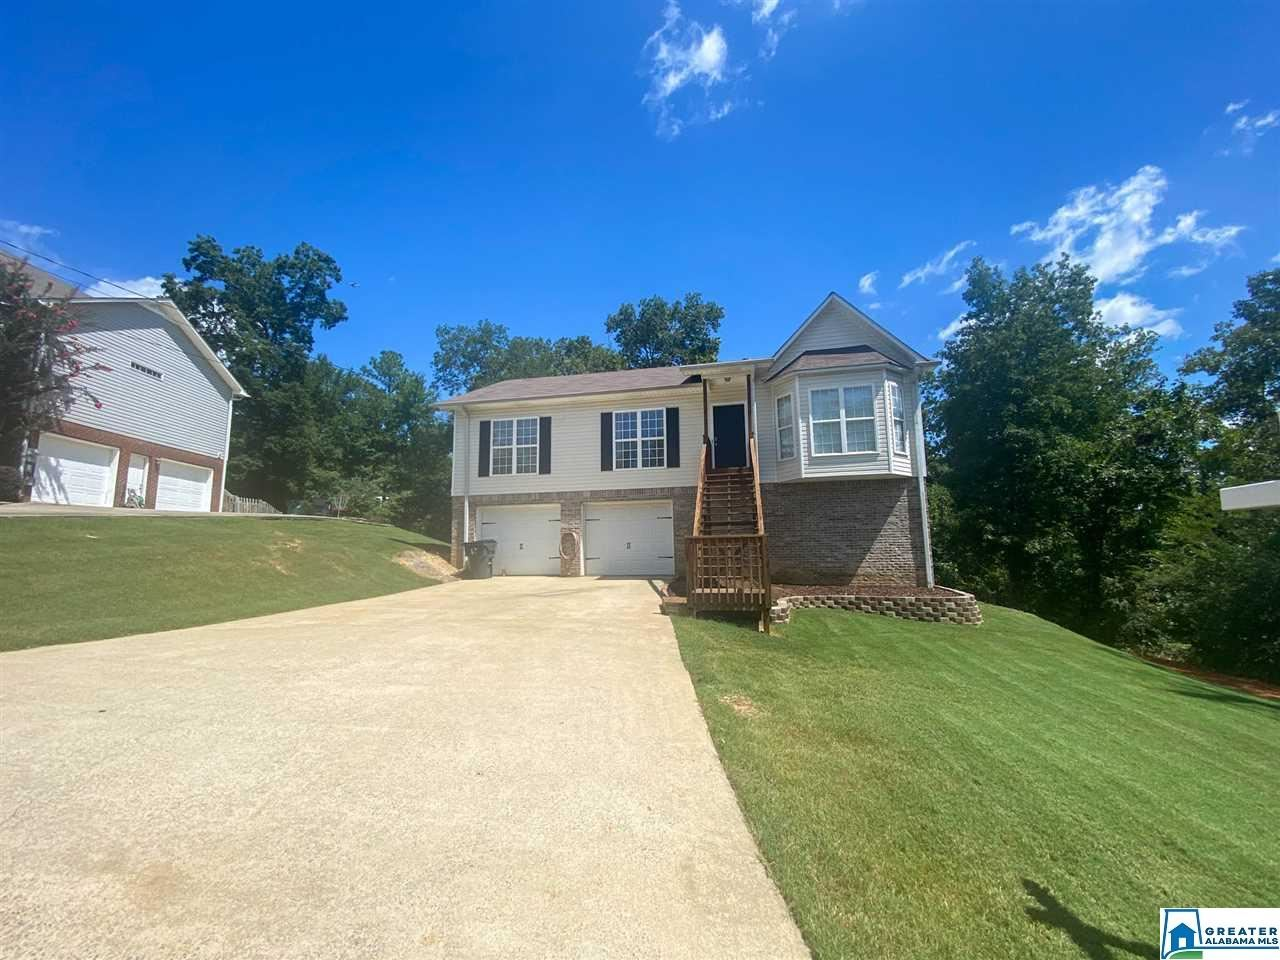 107 GREENLEAF LN, Trussville, AL 35173 - MLS#: 890870